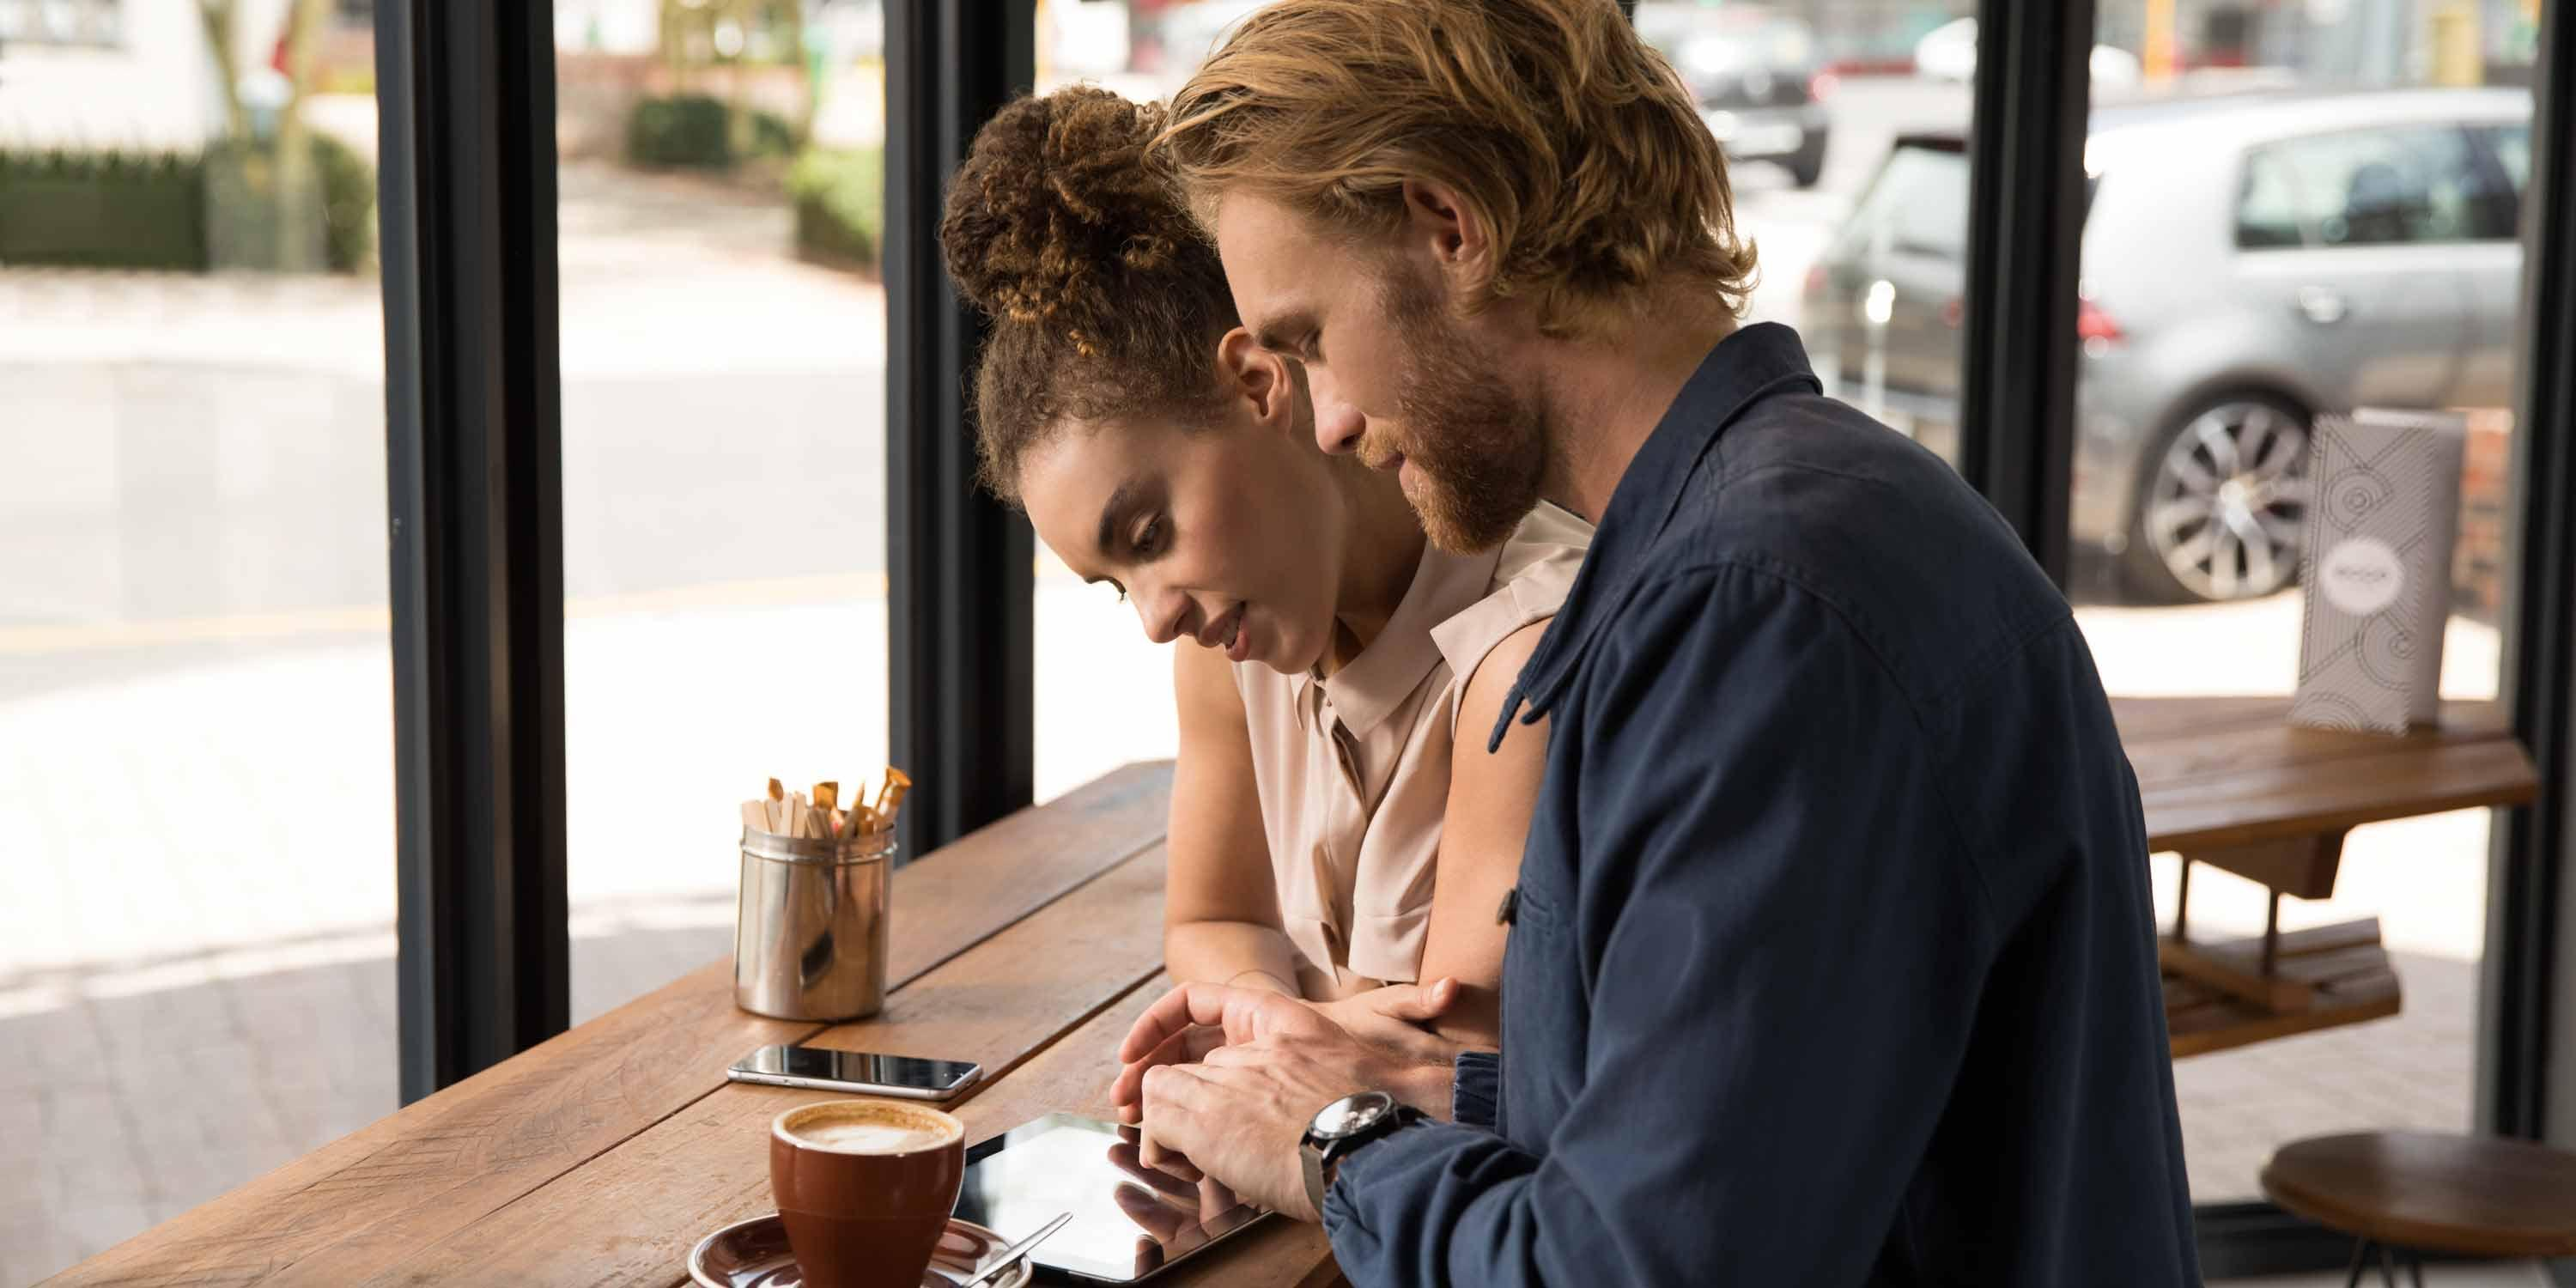 couple-in-cafe-looks-on-tablet